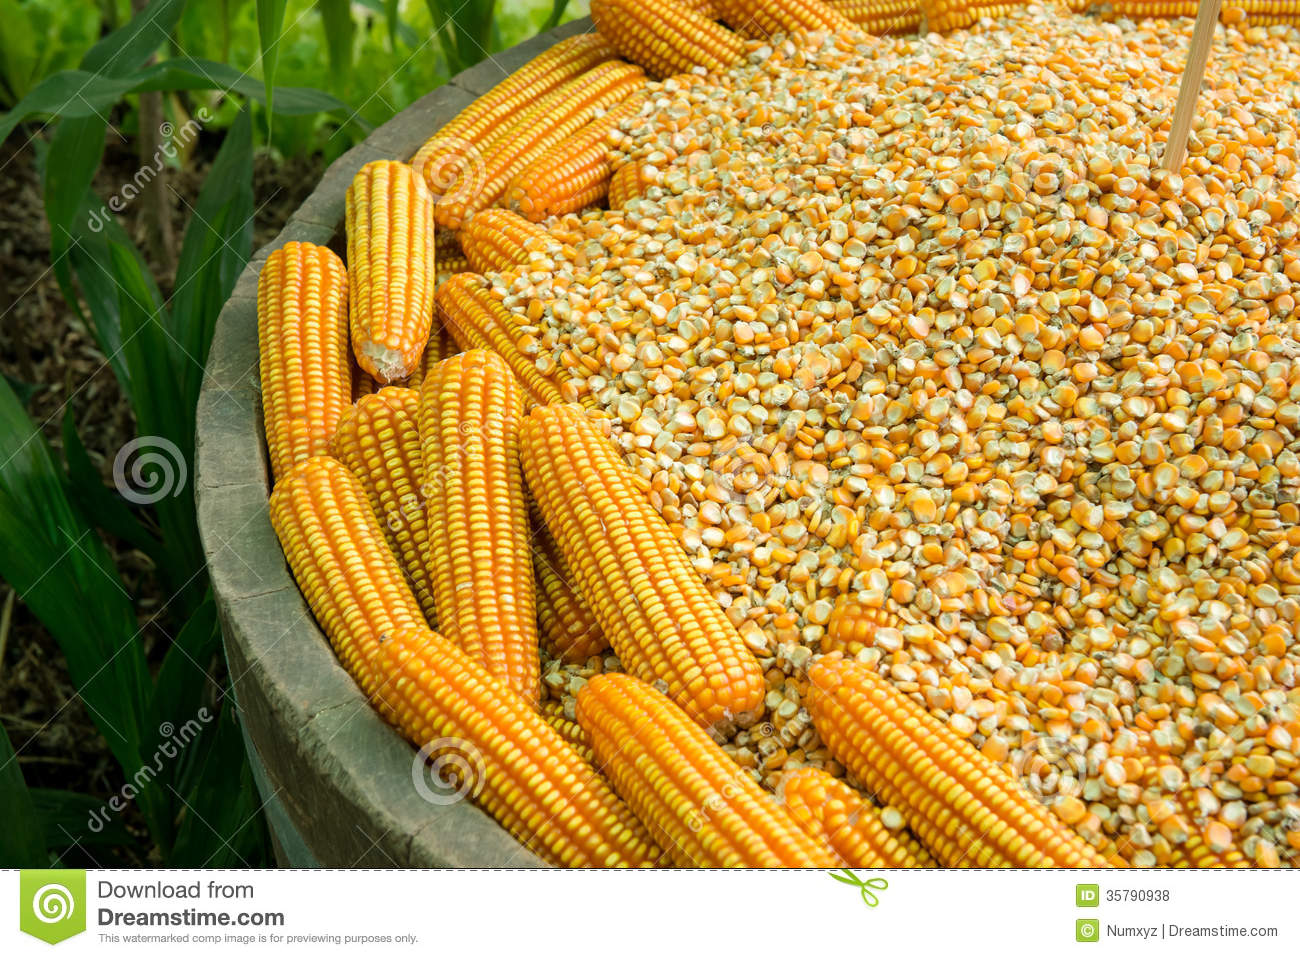 seed corn industry essay And seed companies, the environmental impacts of the technology, and the  potential  1604 bushels of bt corn per field, while crops grown from non-gm  seeds.